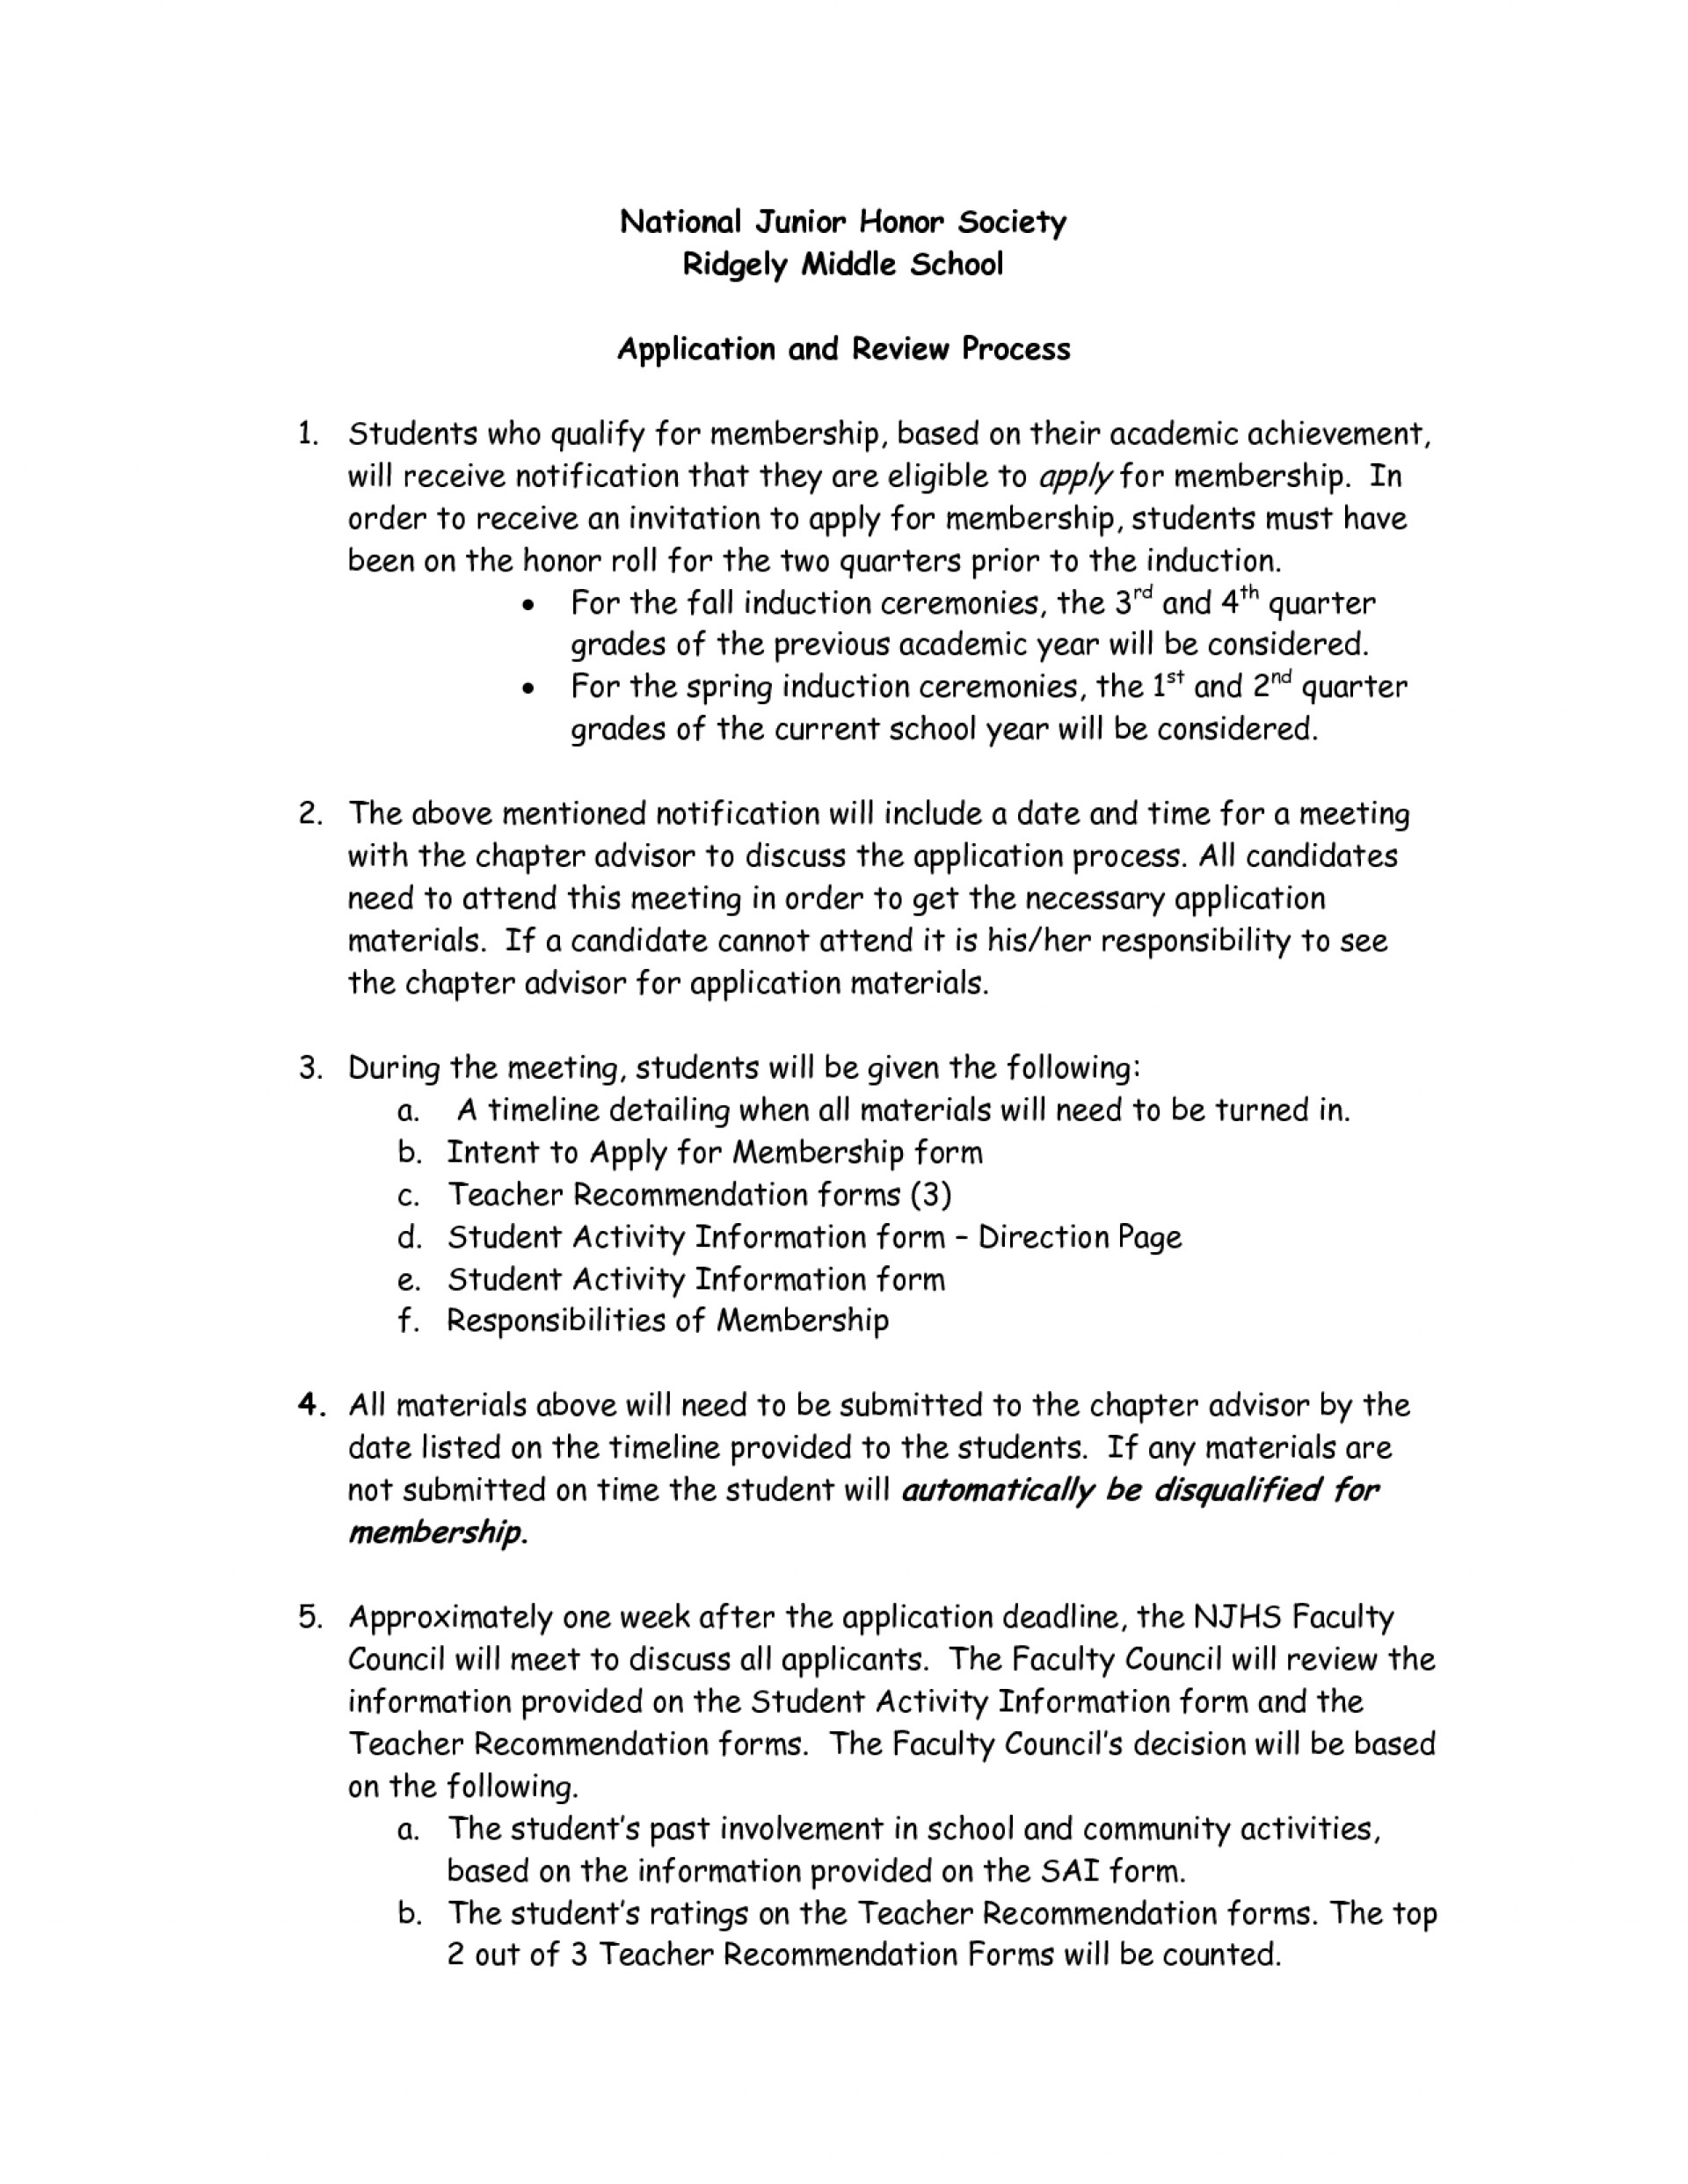 025 National Honor Society Application Essay Example Honors Examples Of Junior Sensational Ideas 1920